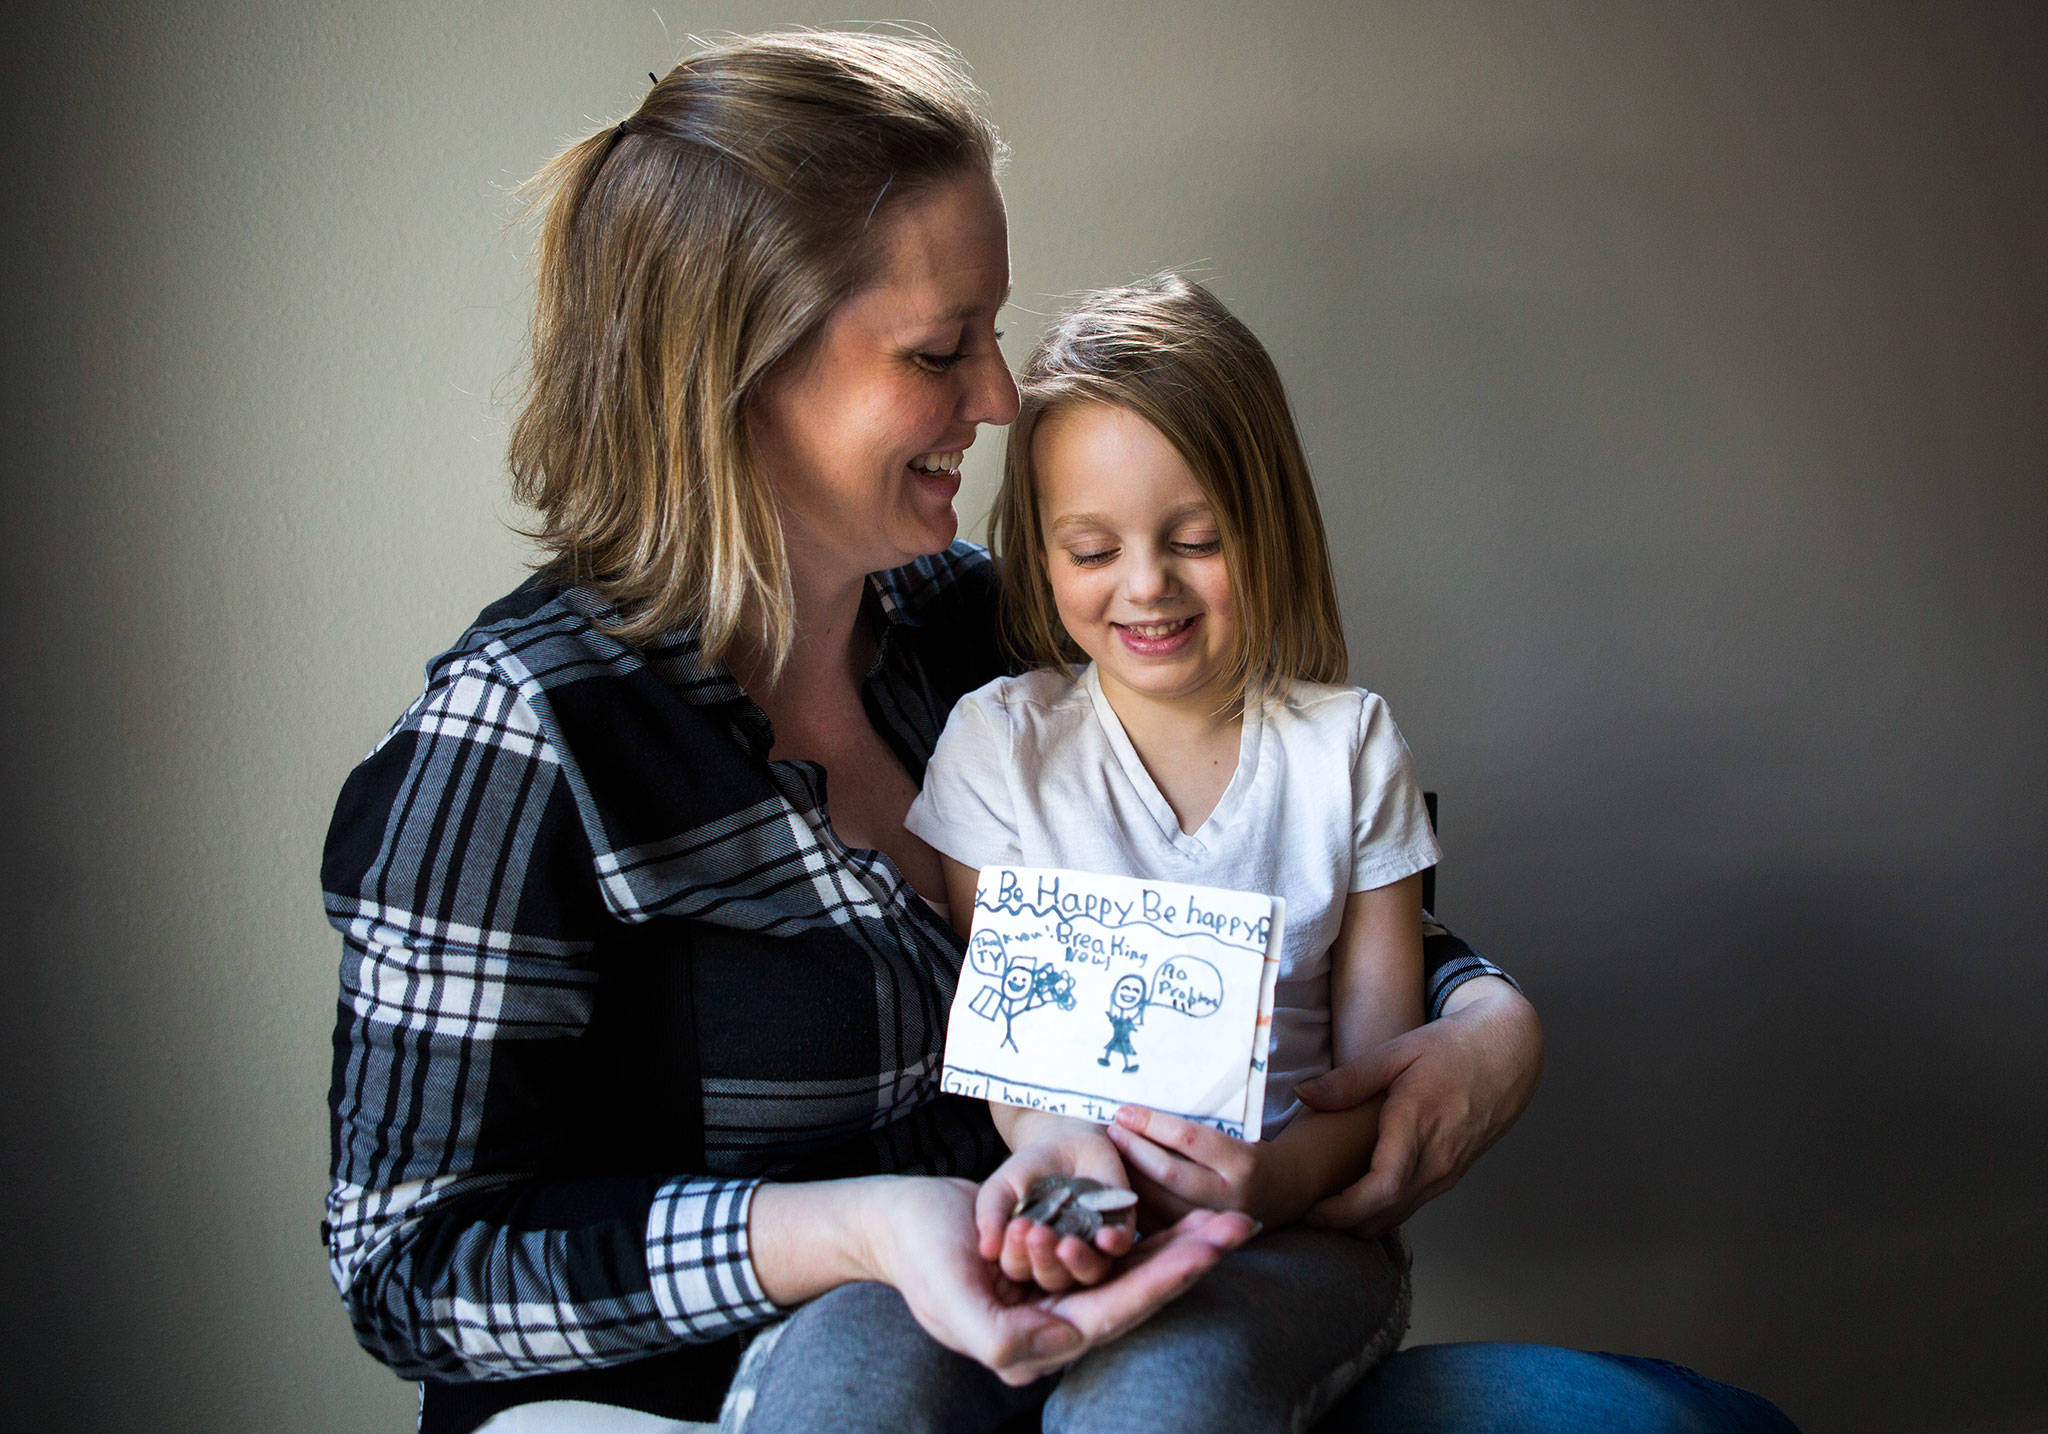 Jessica Beckstrand, left, sits with her daughter Layla, 4, holding some of the money raised and cards made for their family's non-profit, Strong Cares Guild, at their home on Tuesday, Feb. 26, 2019 in Marysville, Wash. (Olivia Vanni / The Herald)